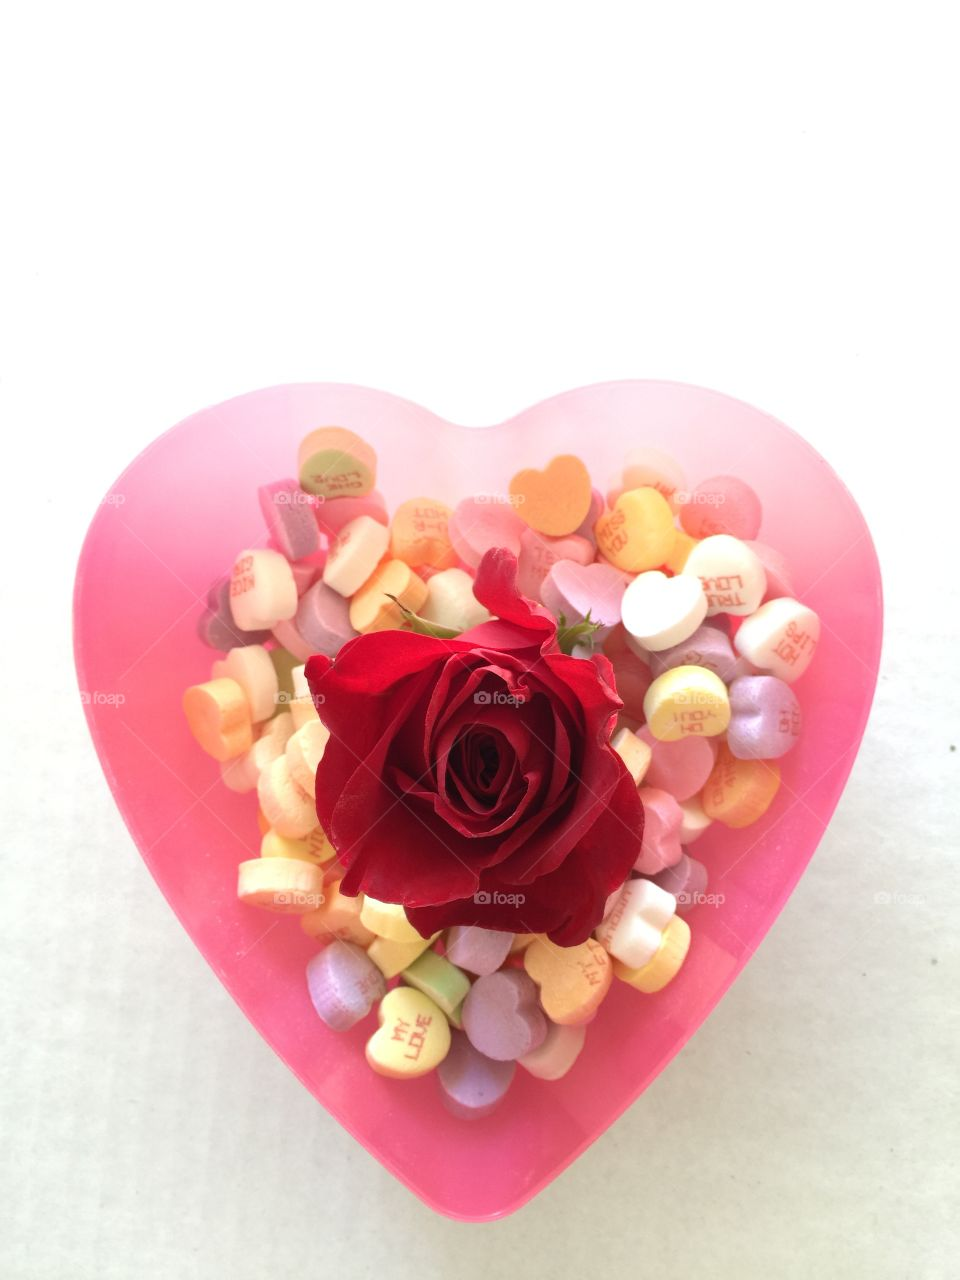 Red rose and candies